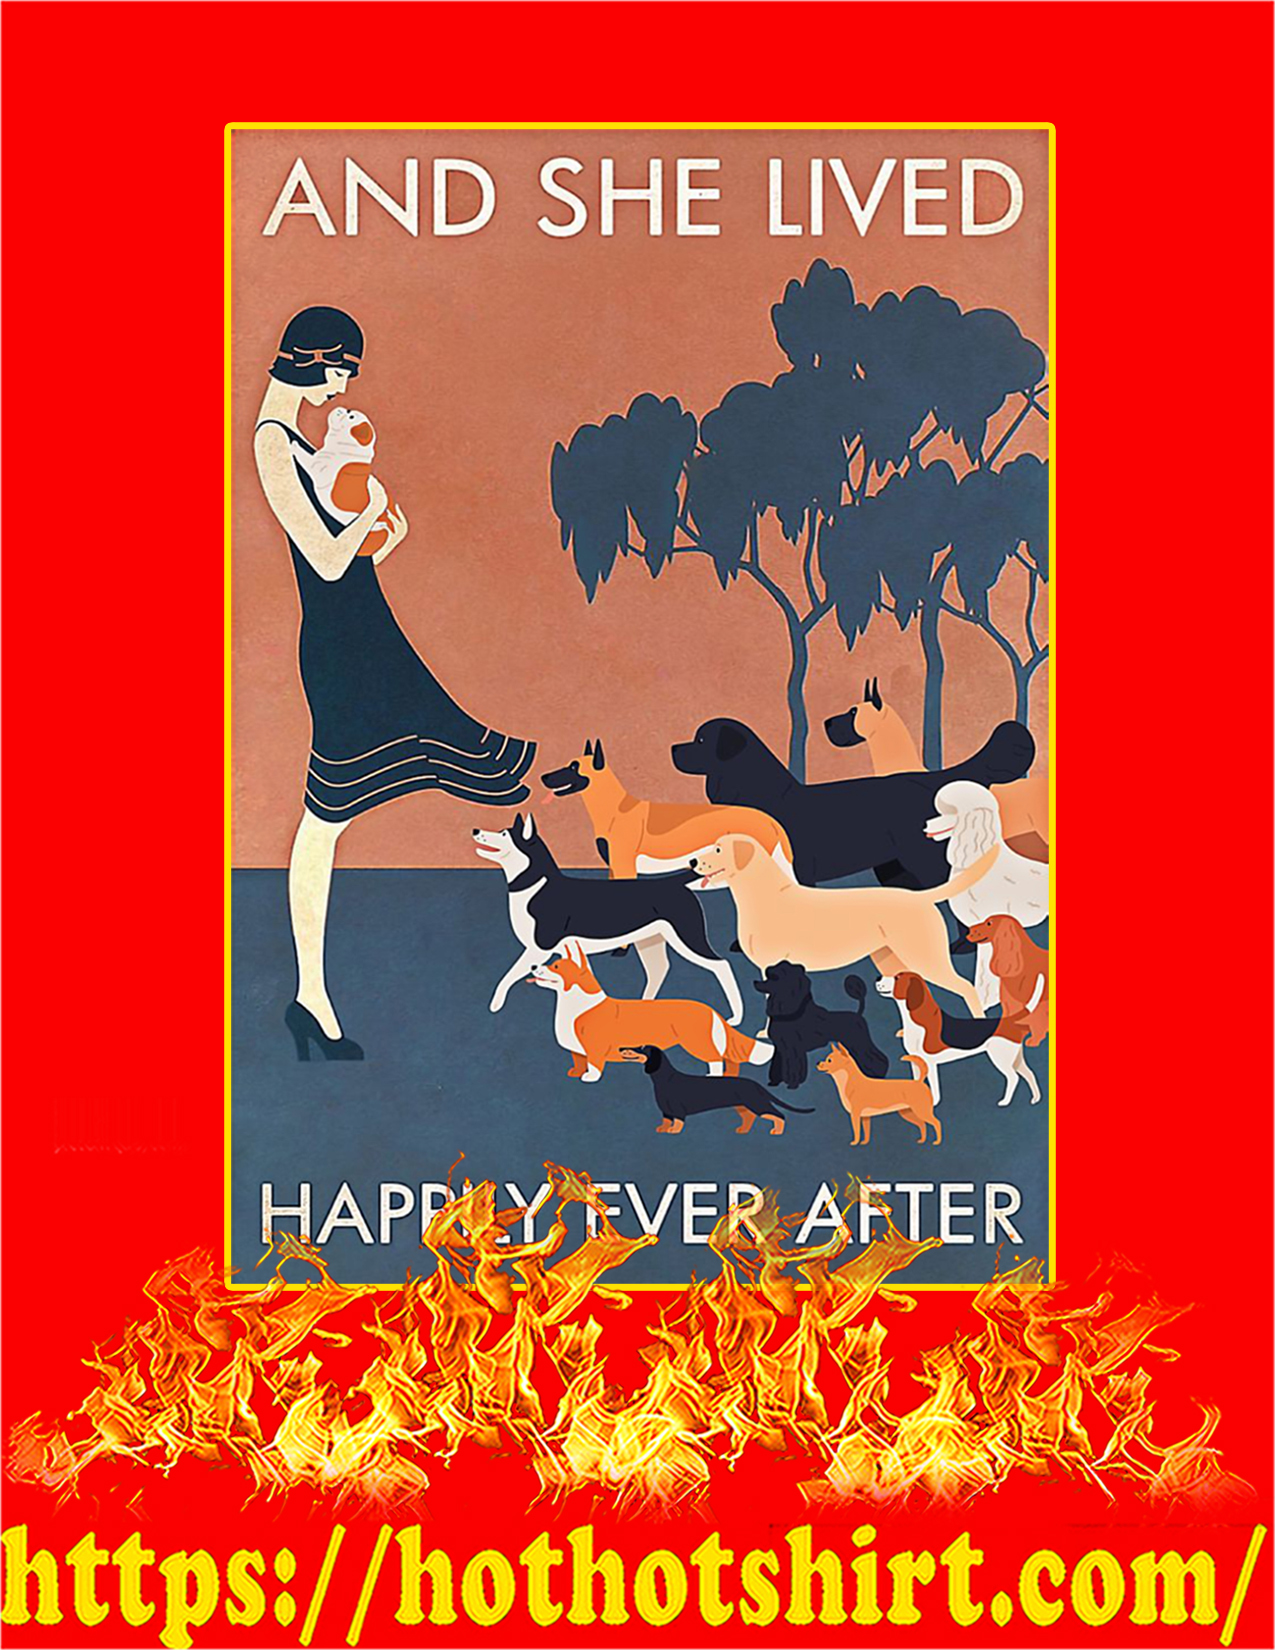 Dog And she lived happily ever after poster - A2